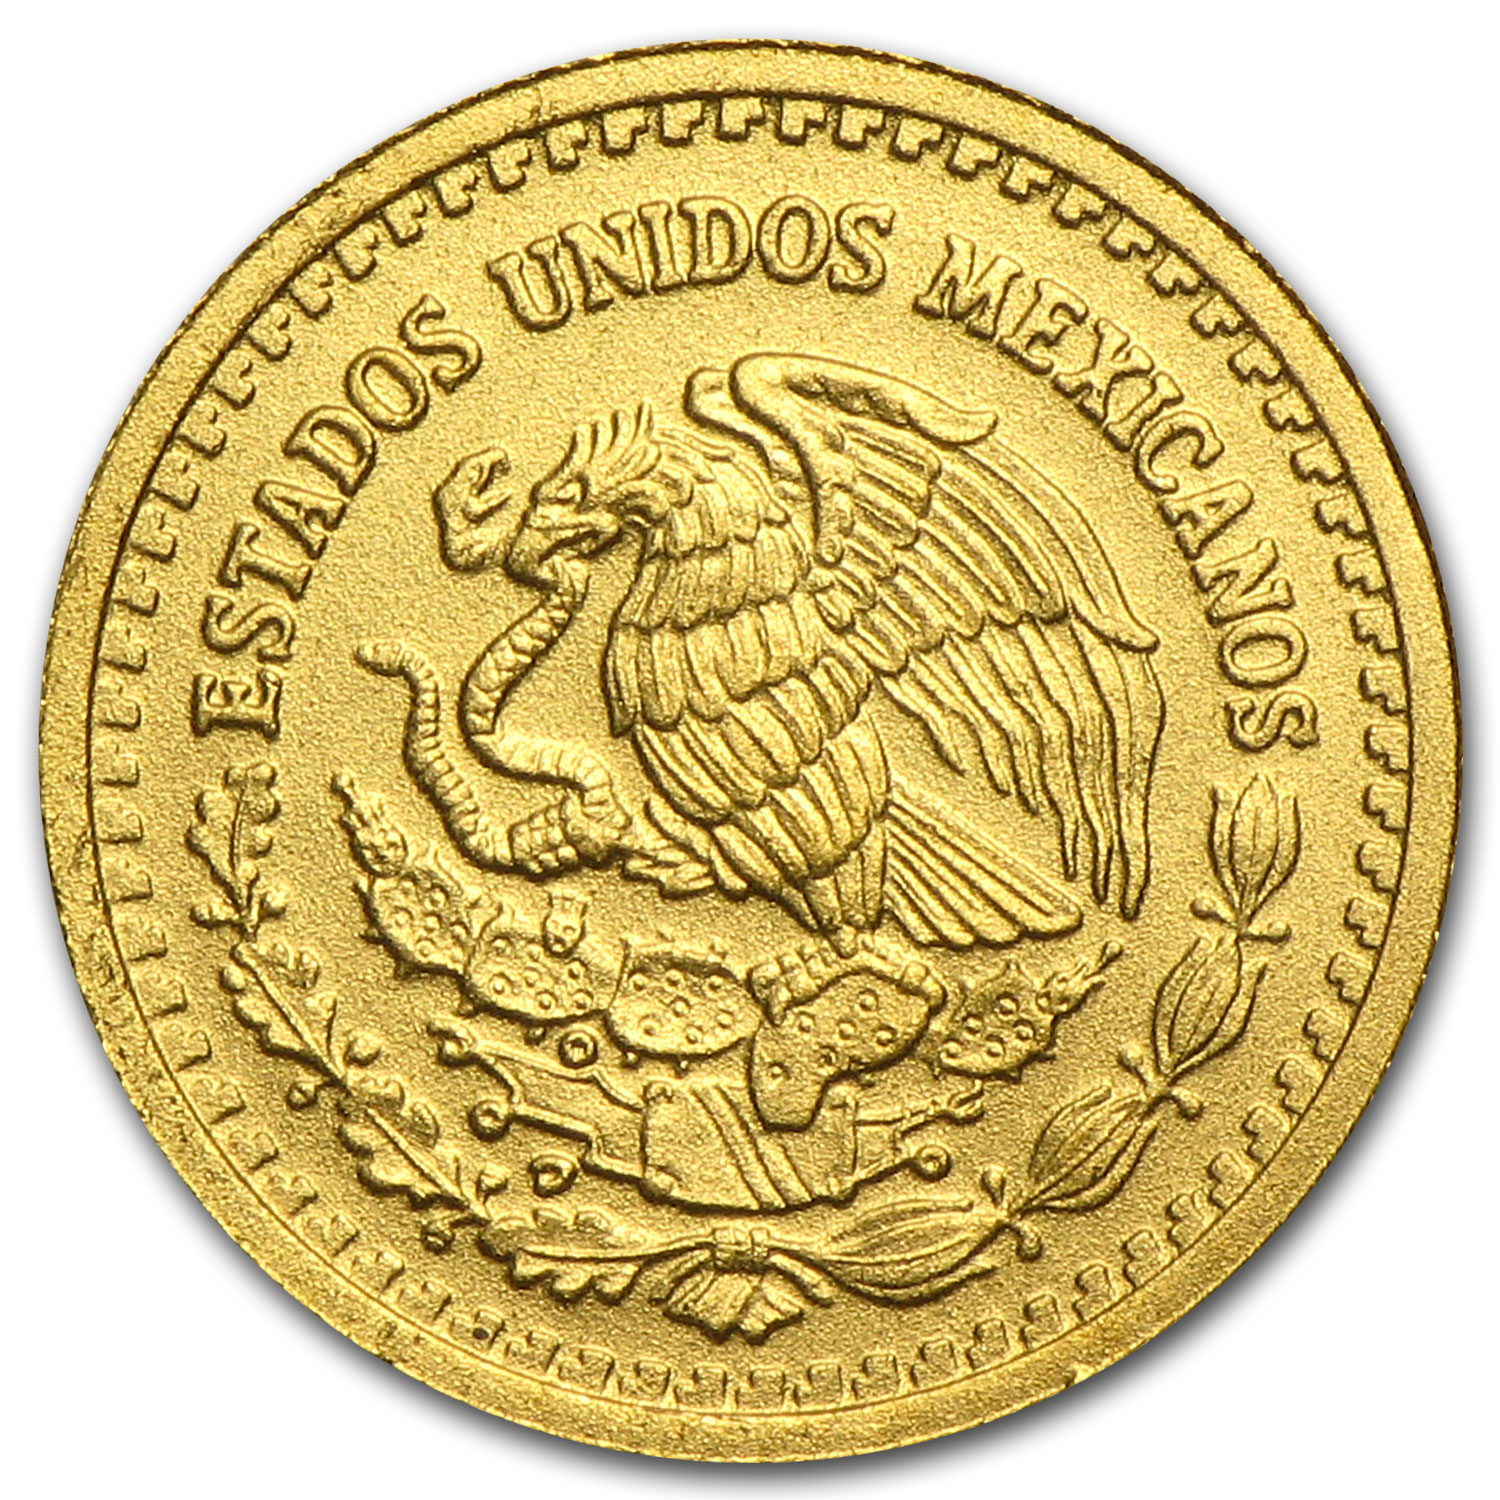 2014 Mexico 1/20 oz Gold Libertad BU